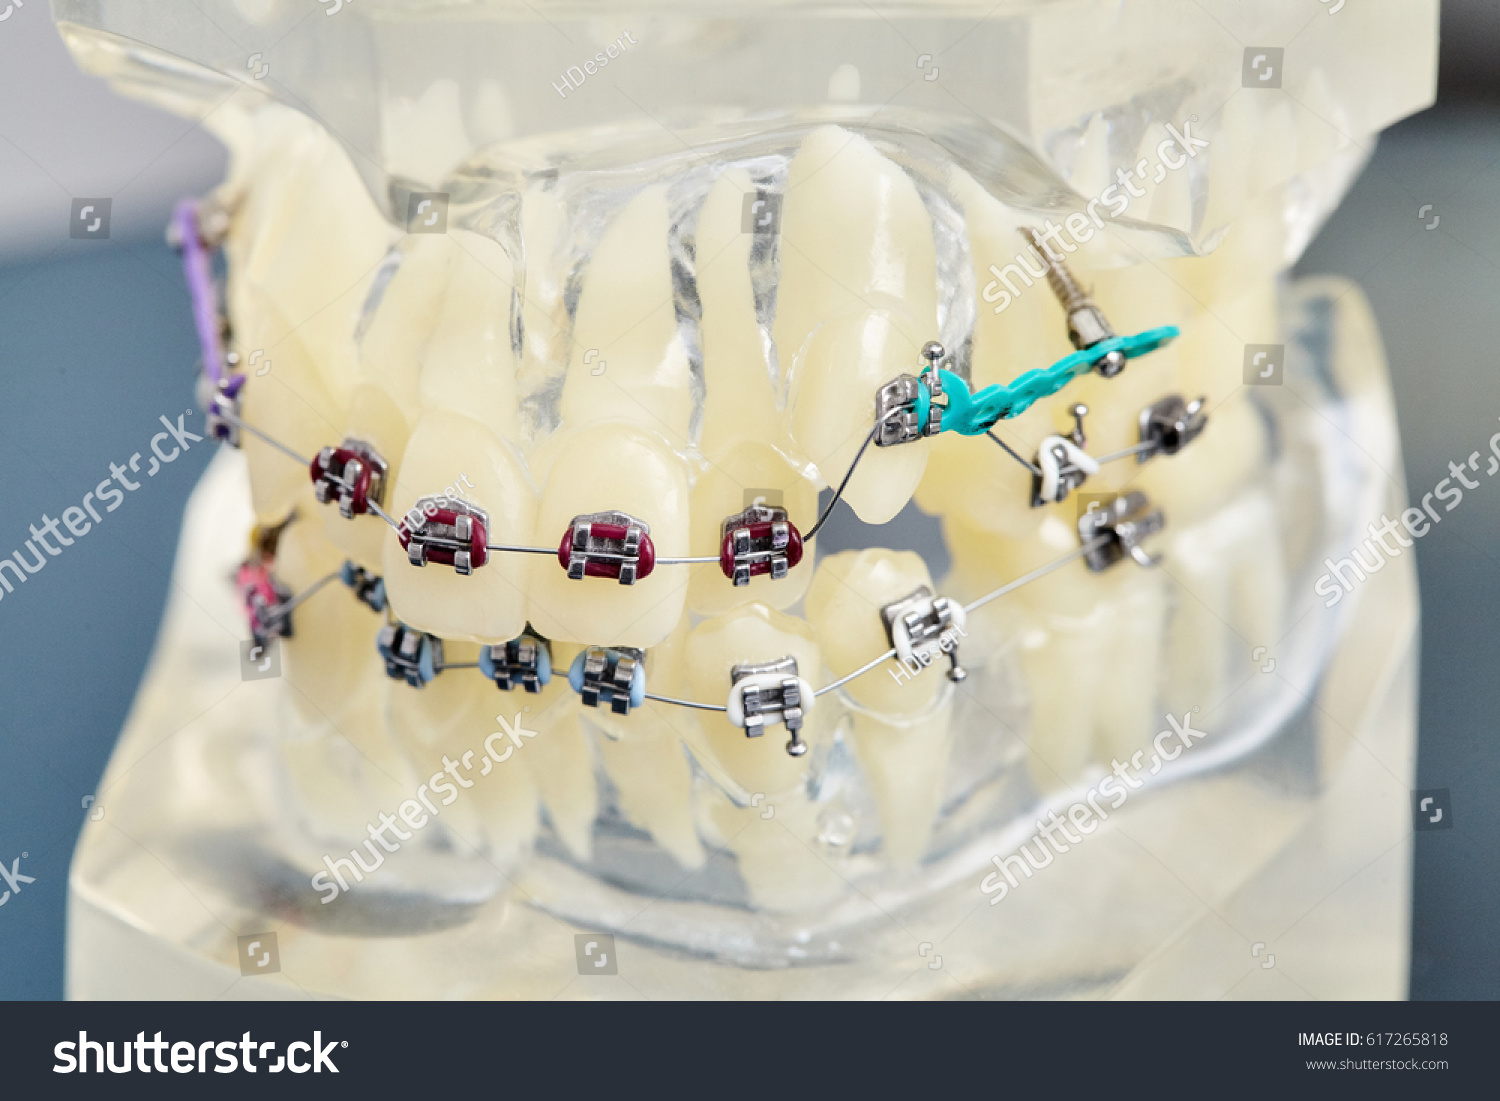 Fancy Braces Wired Shut Mold - Electrical Circuit Diagram Ideas ...